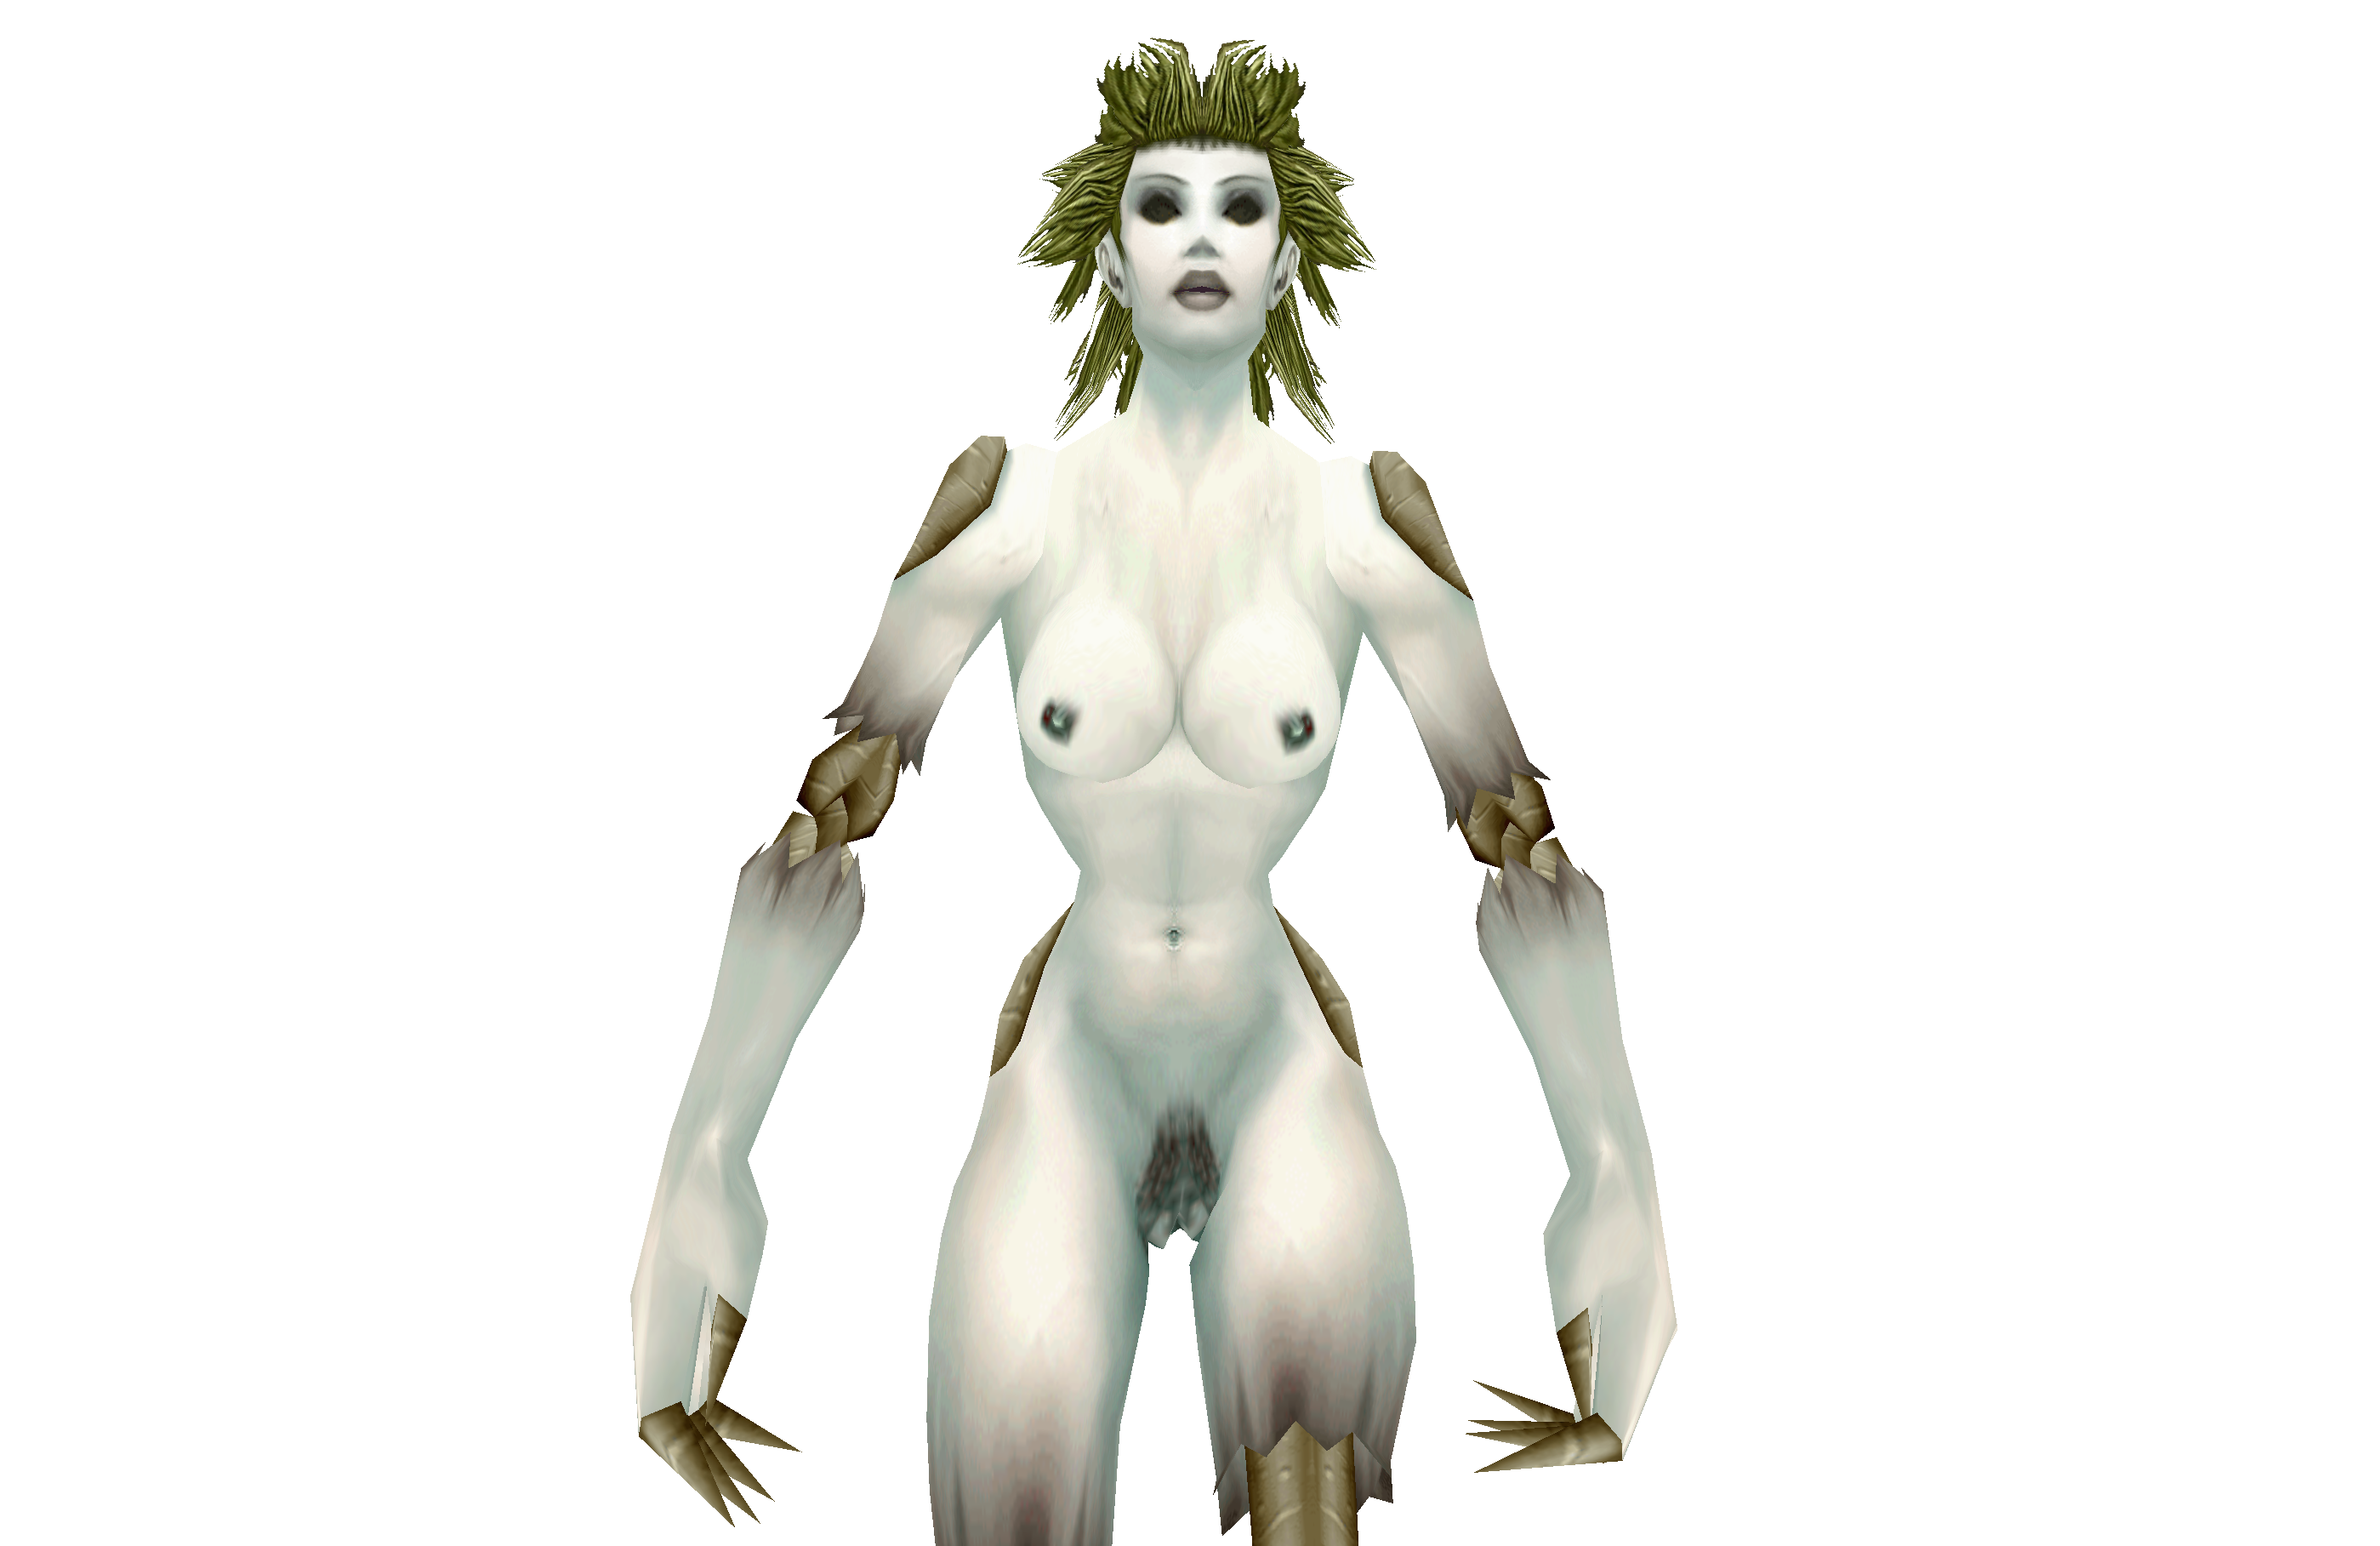 World of warcraft nude patches transparent hentia image